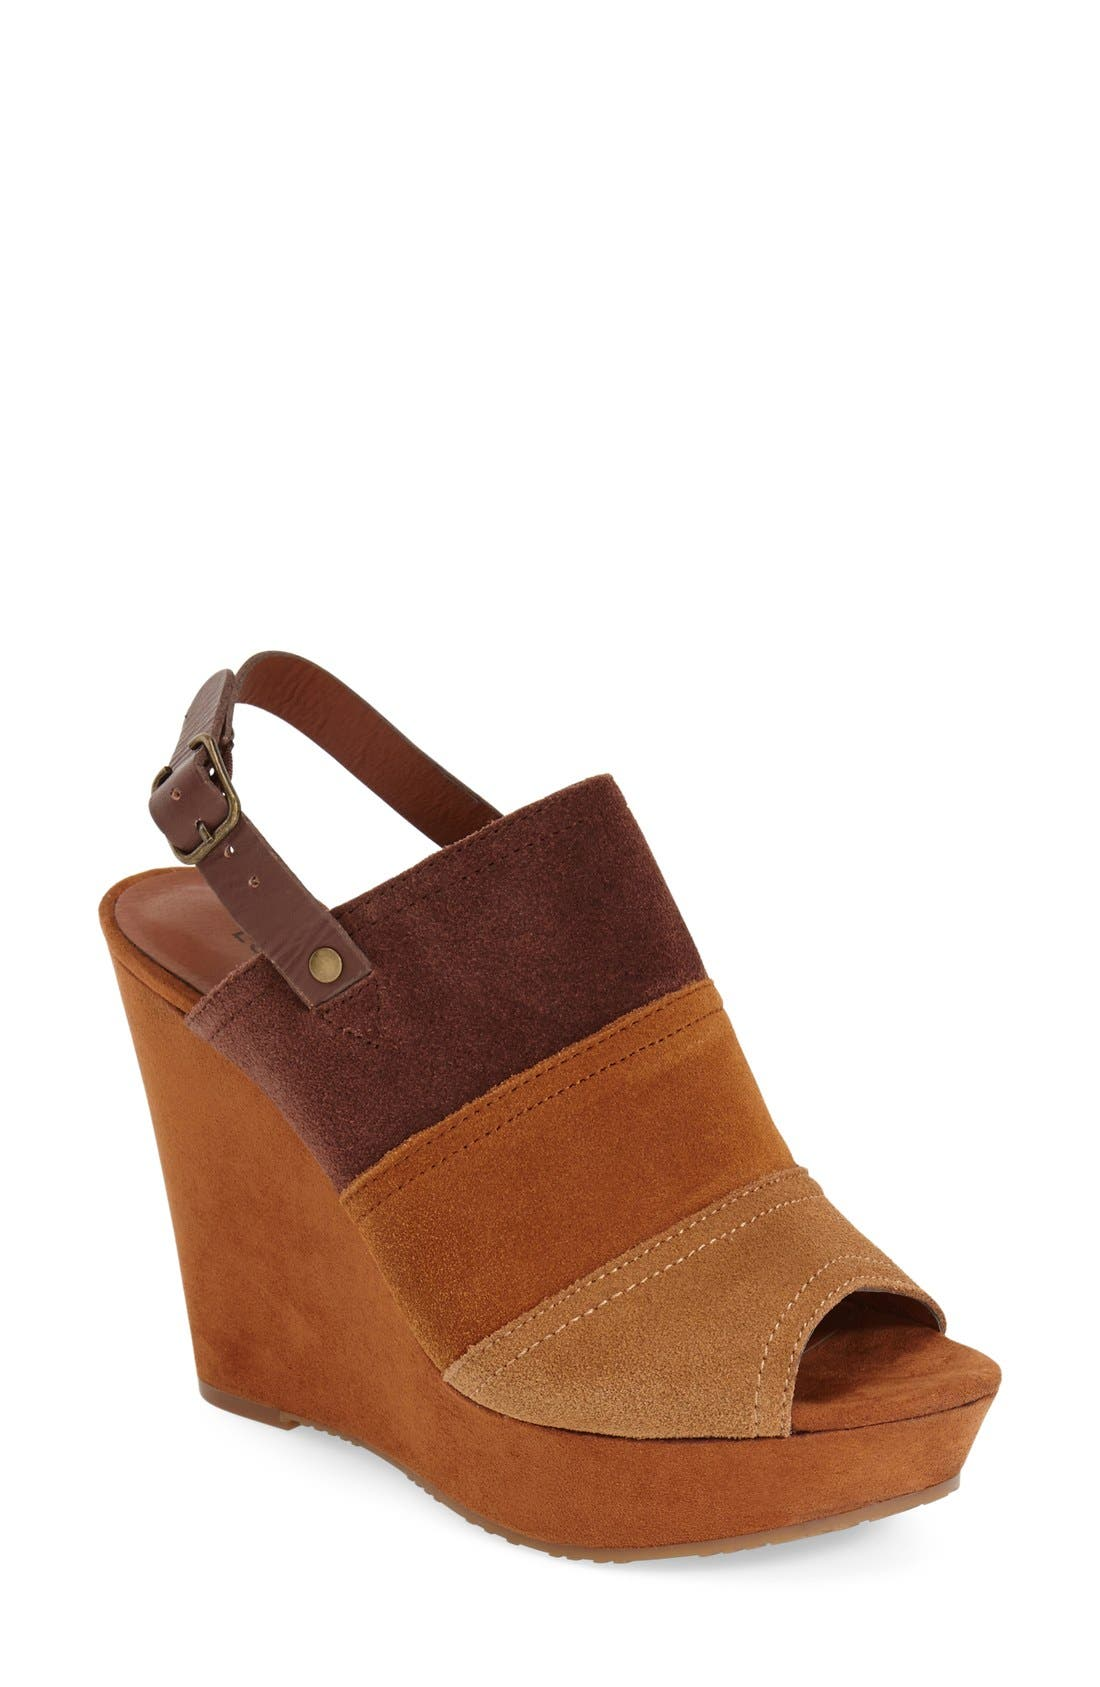 Main Image - Lucky Brand 'Frescala' Wedge Sandal (Women)